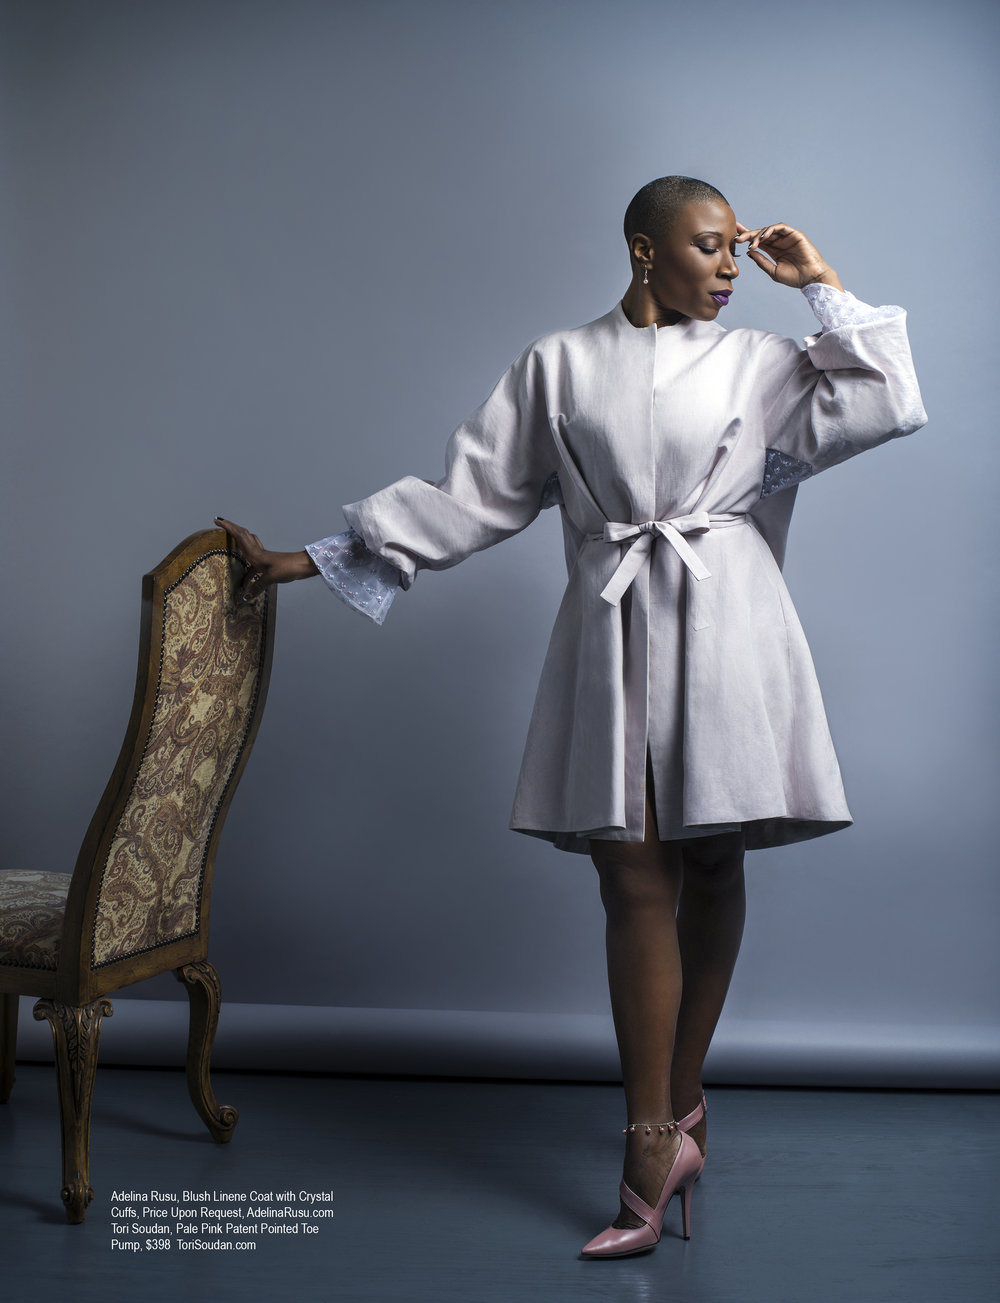 Aisha Hinds in Regard Magazine